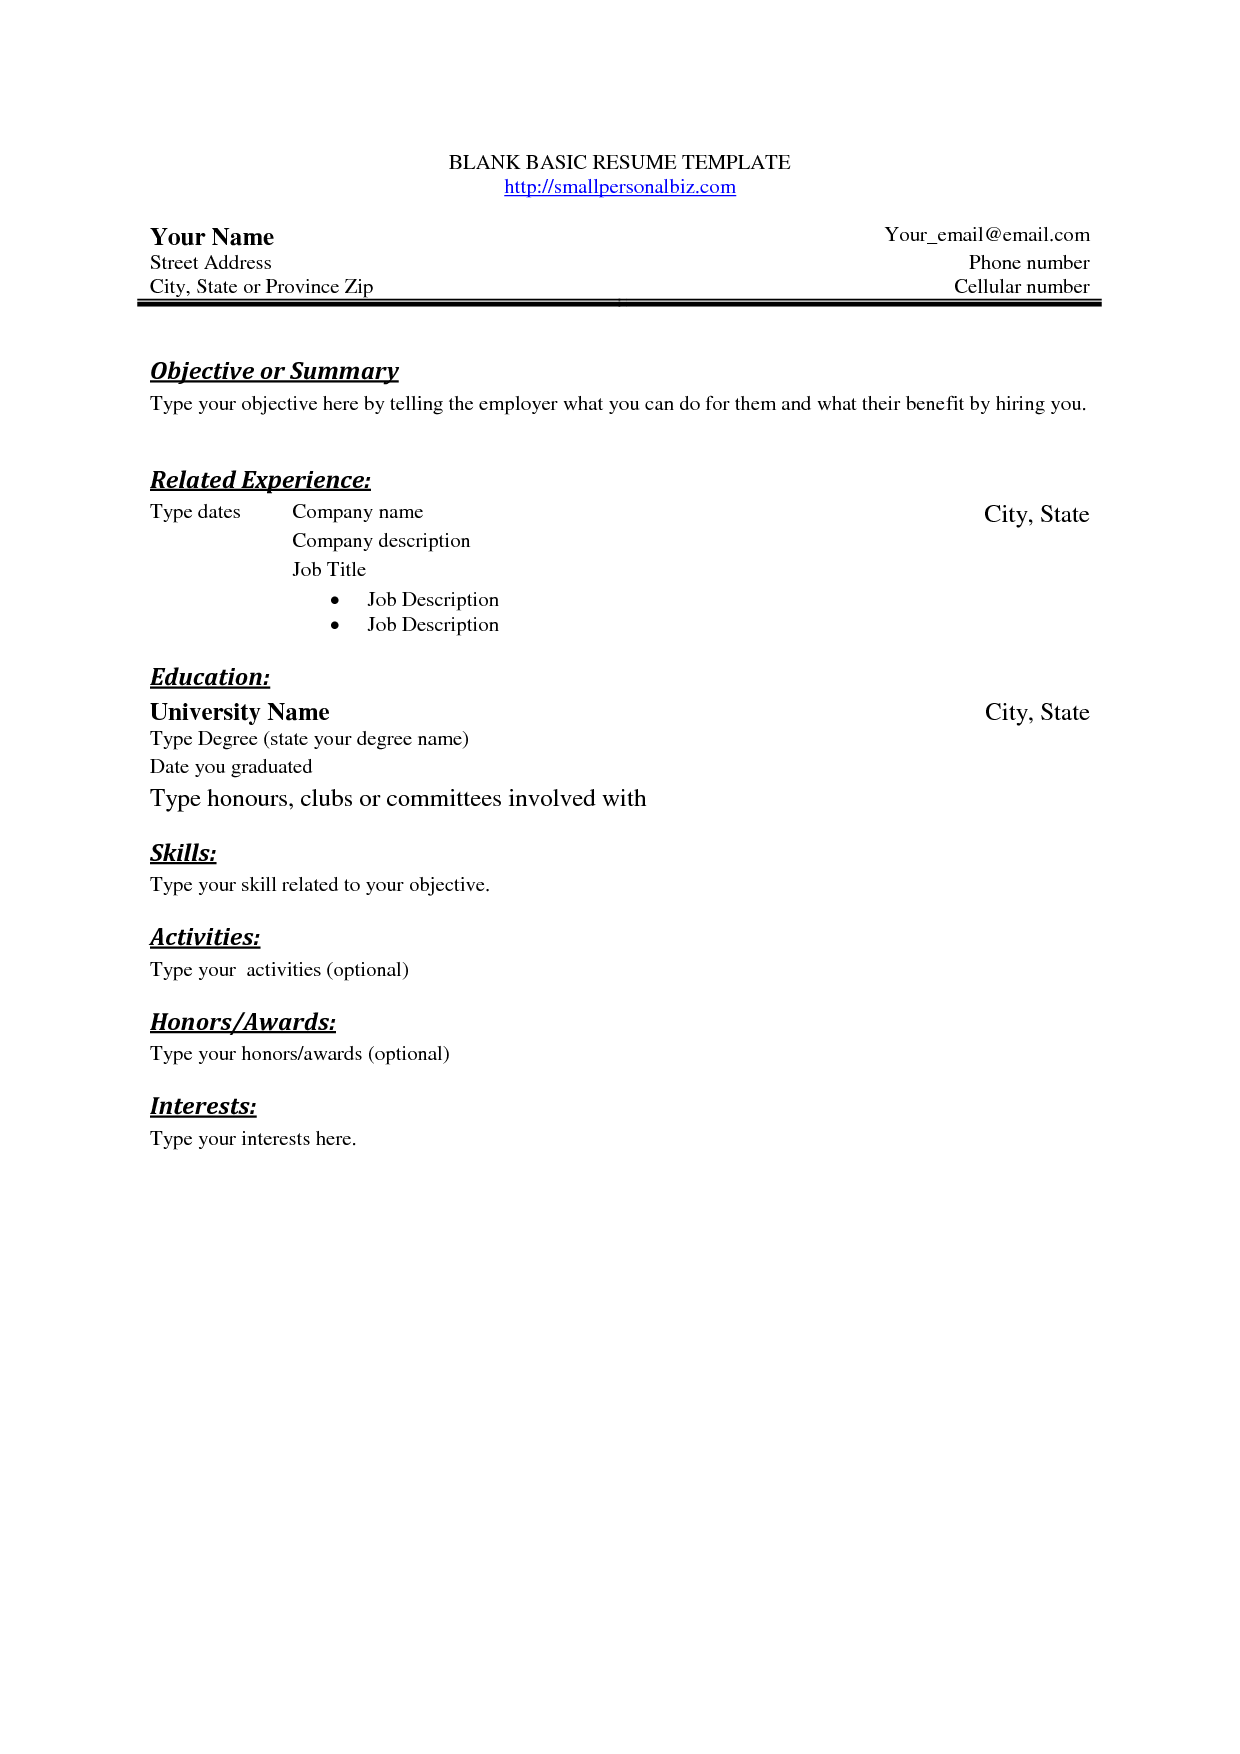 Sample Resume Simple Free Basic Blank Resume Template Free Basic Sample